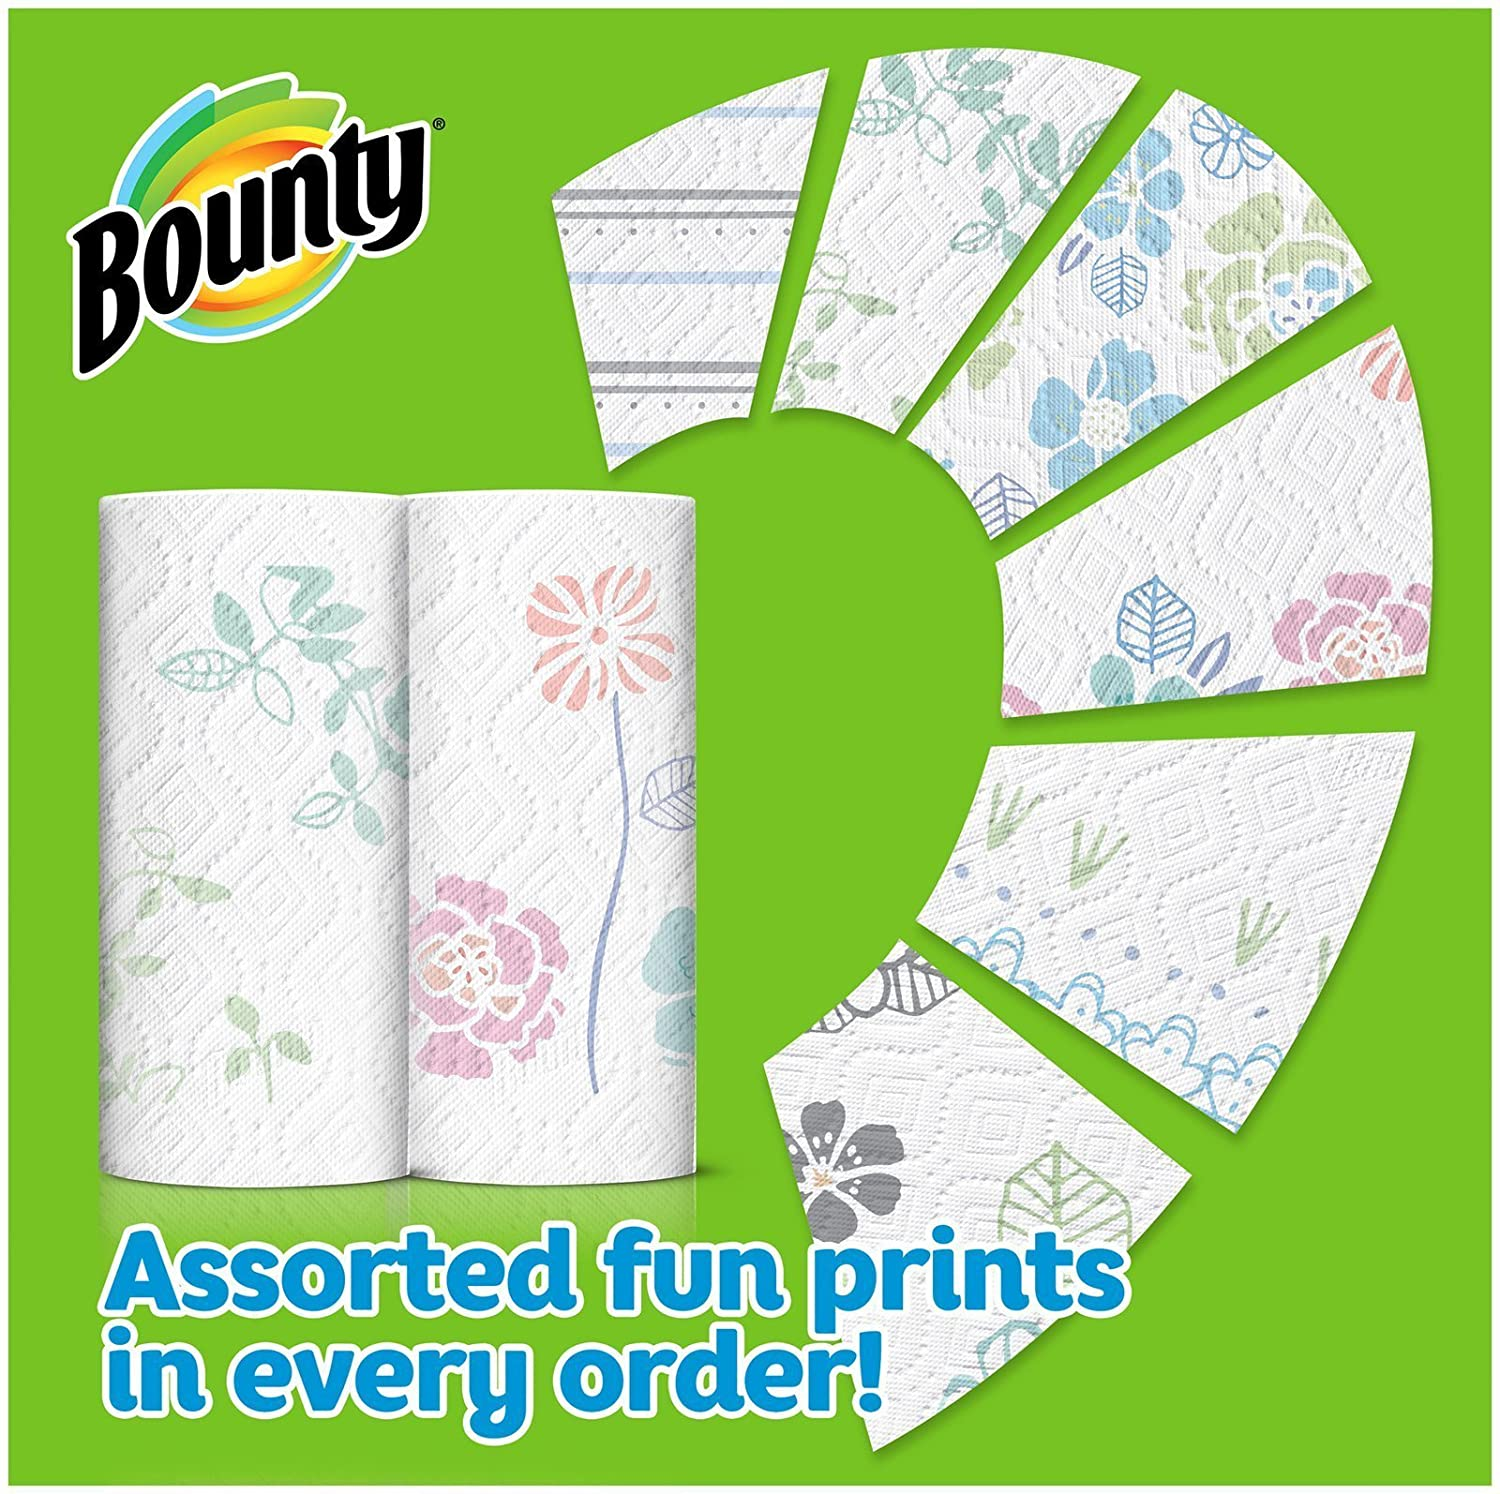 Amazon.com: Bounty Bounty paper towels, print, 2 big roll=33% more sheets, 2 Count: Health & Personal Care